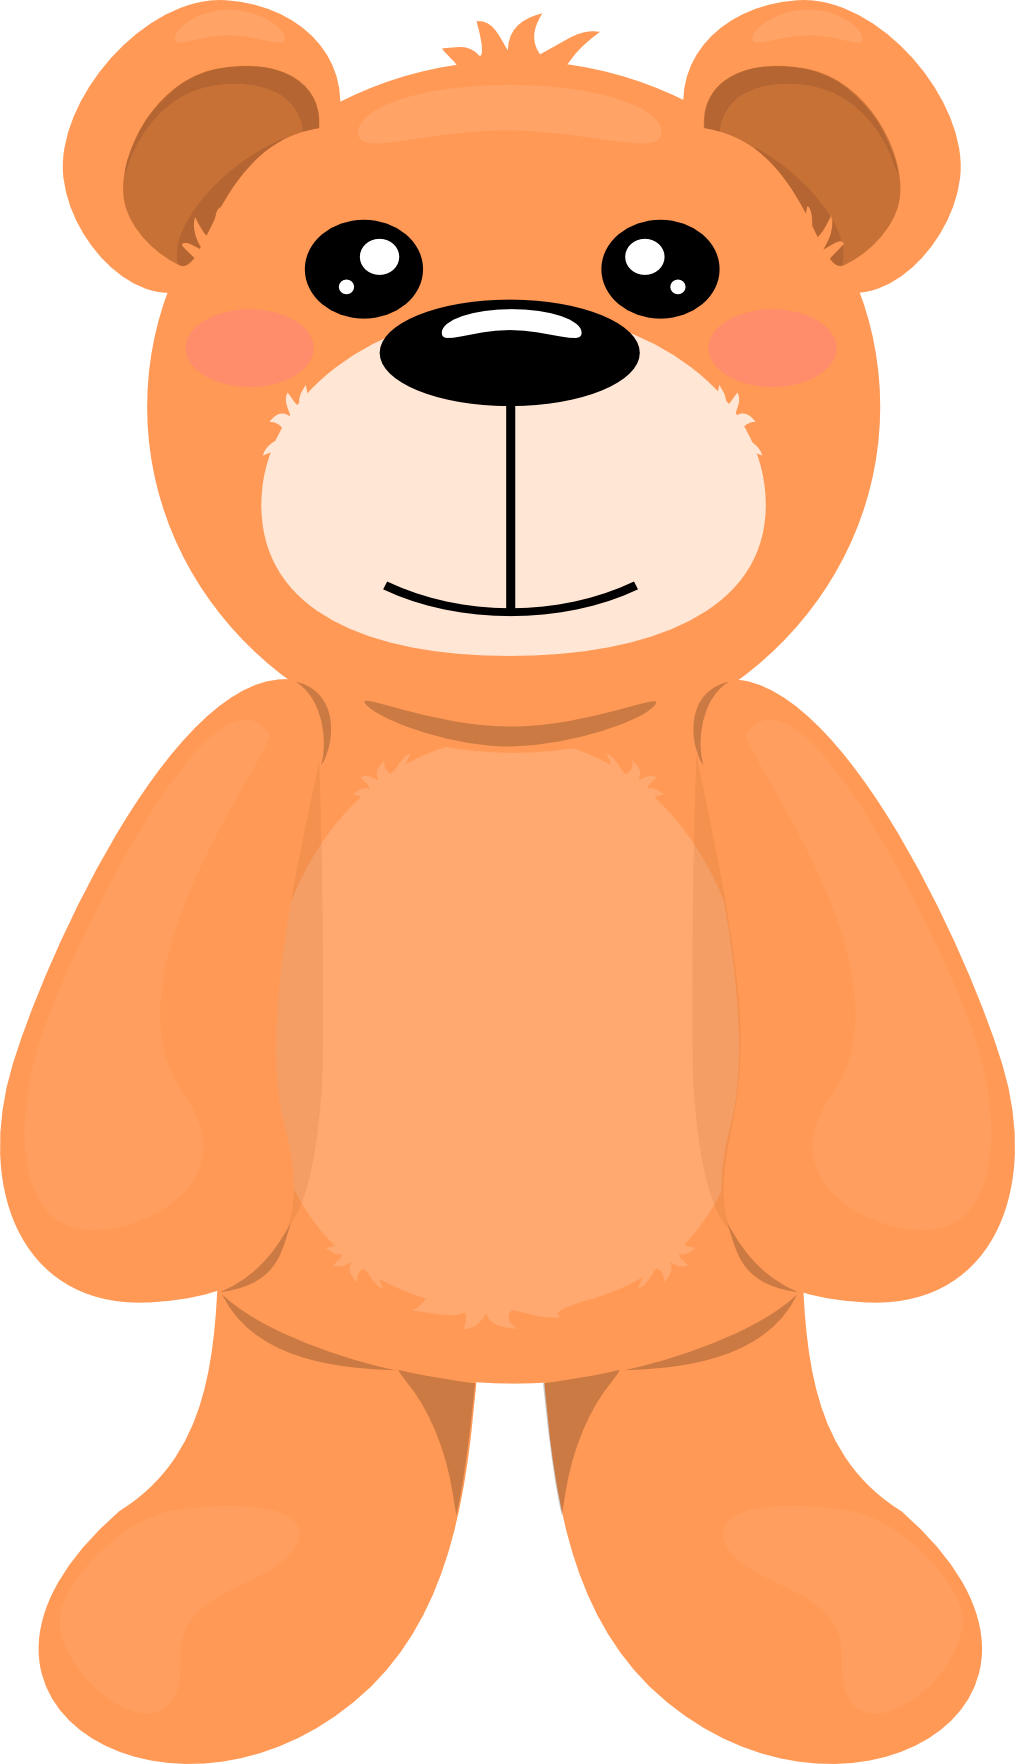 Mixed teddy bears and. Bear clip art transparent background png stock